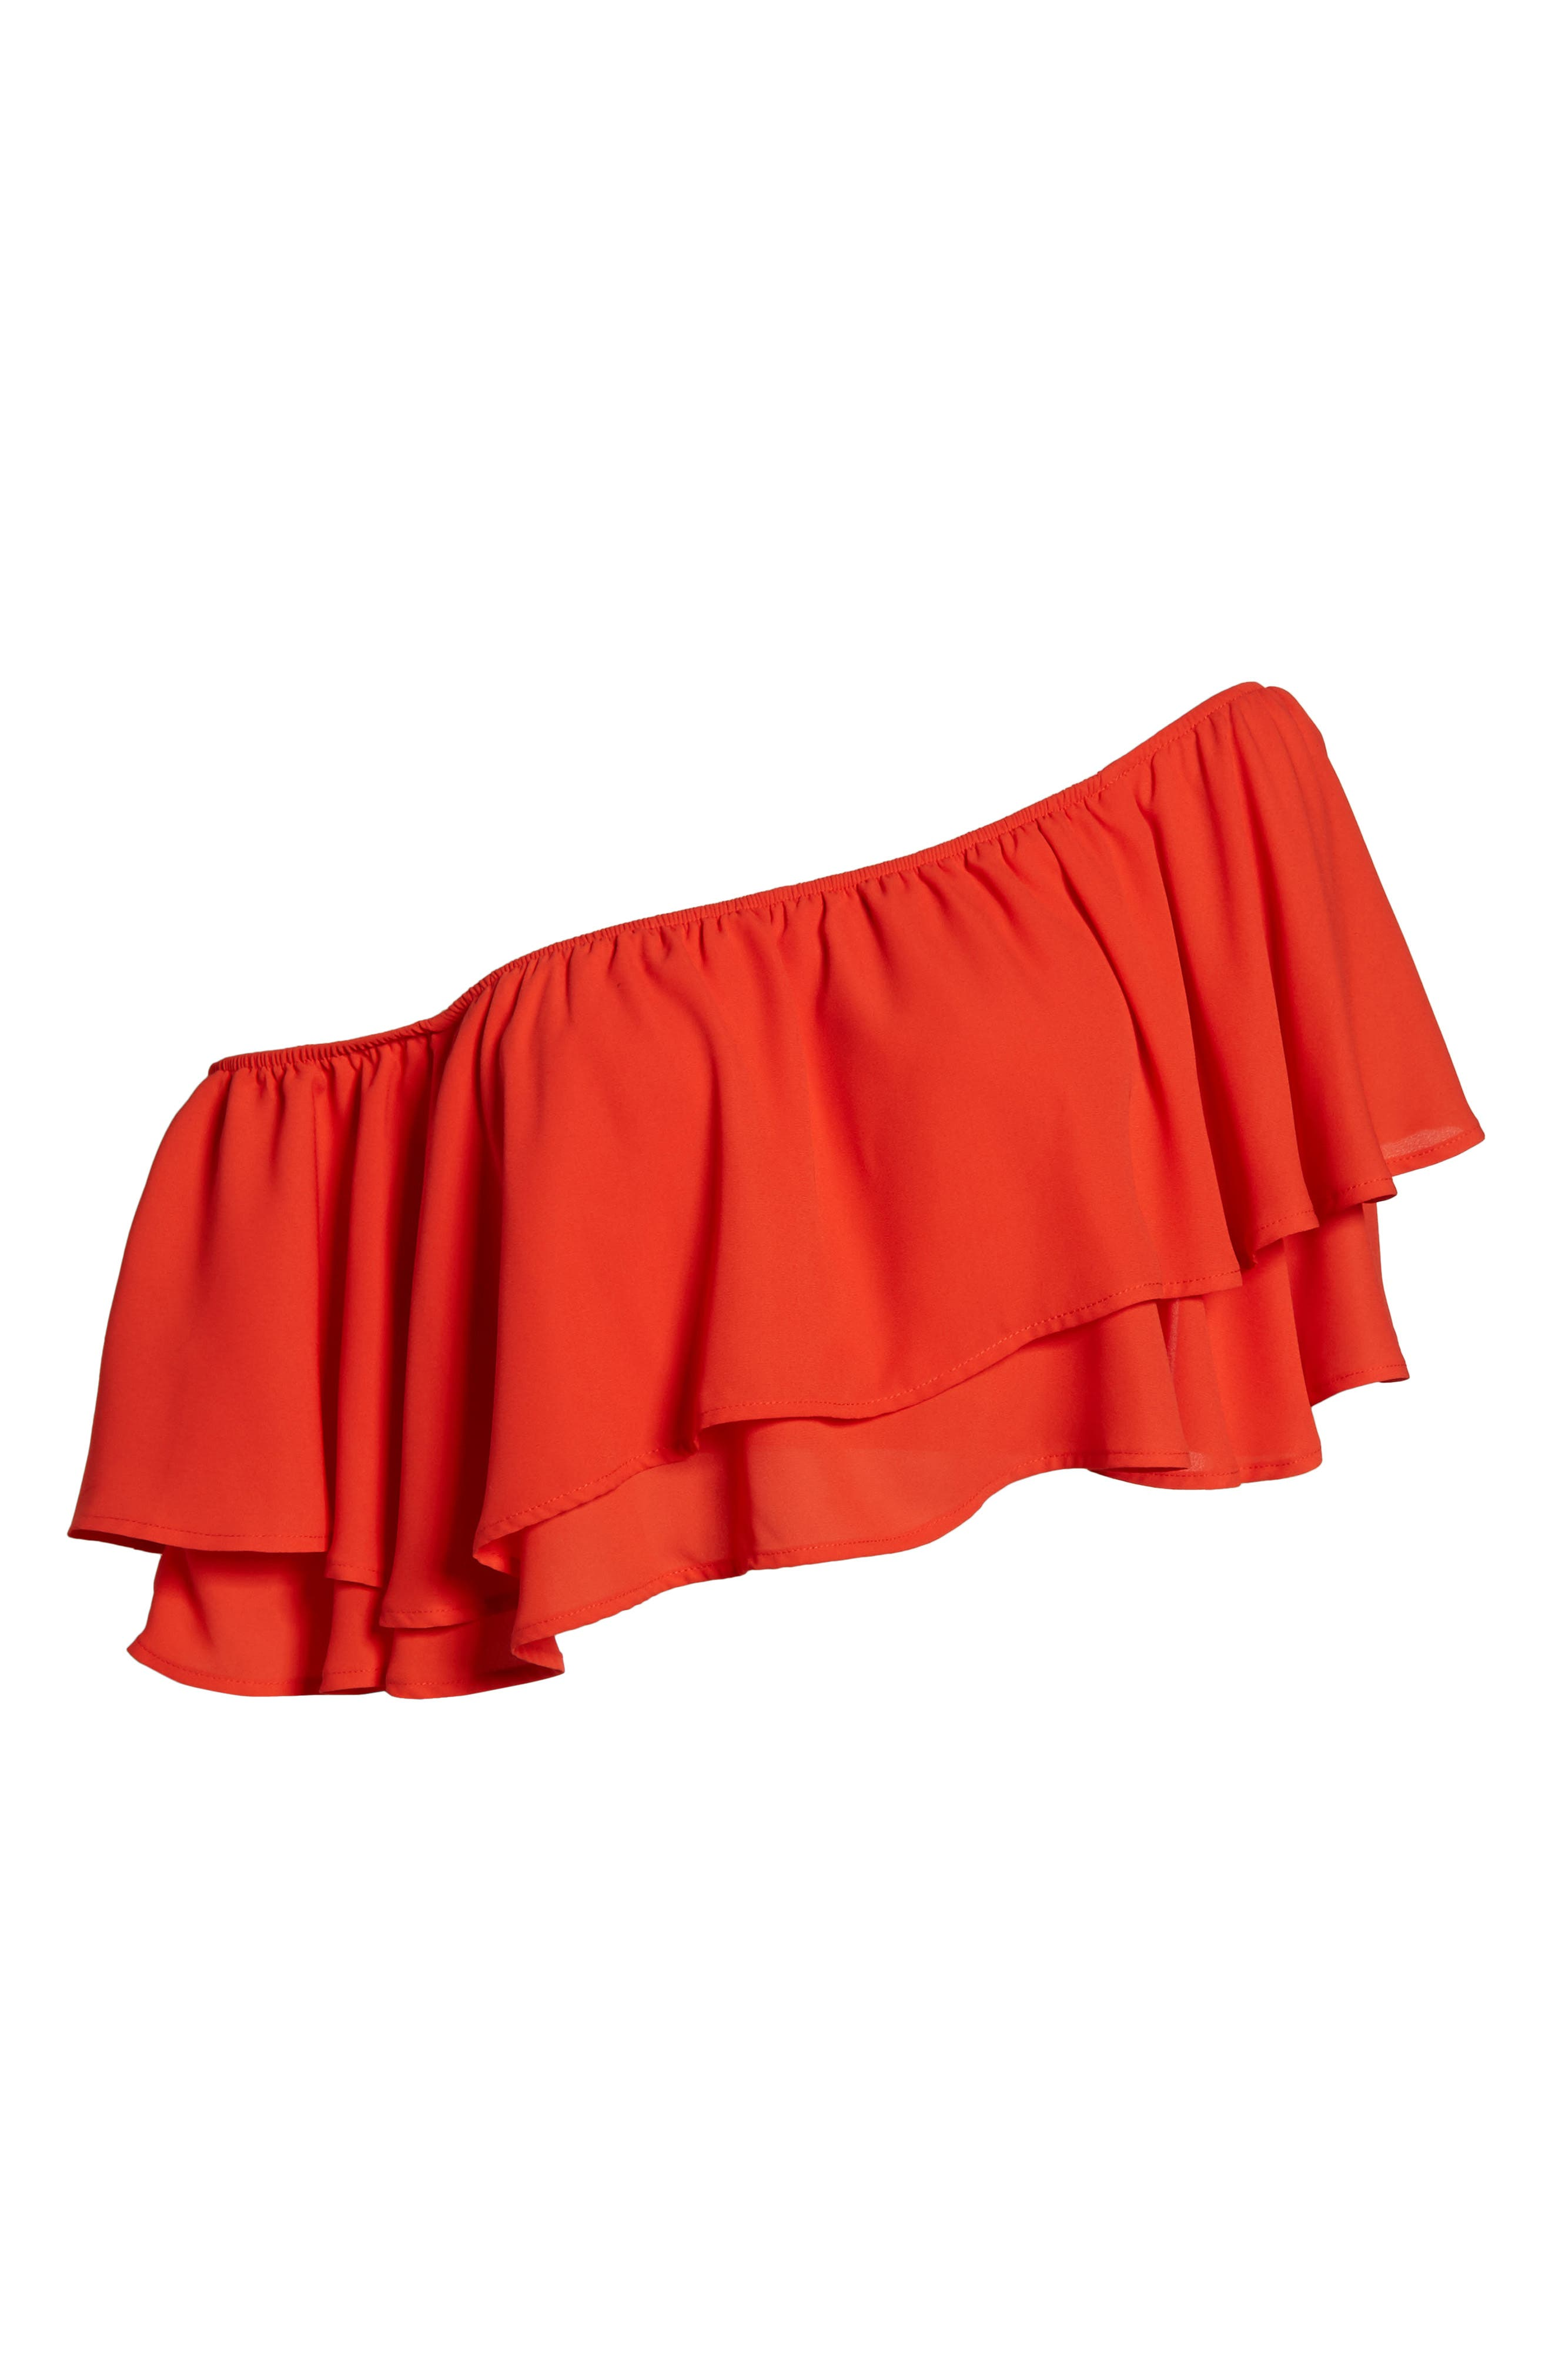 Hayworth Asymmetrical Ruffle Crop Top,                             Alternate thumbnail 7, color,                             600